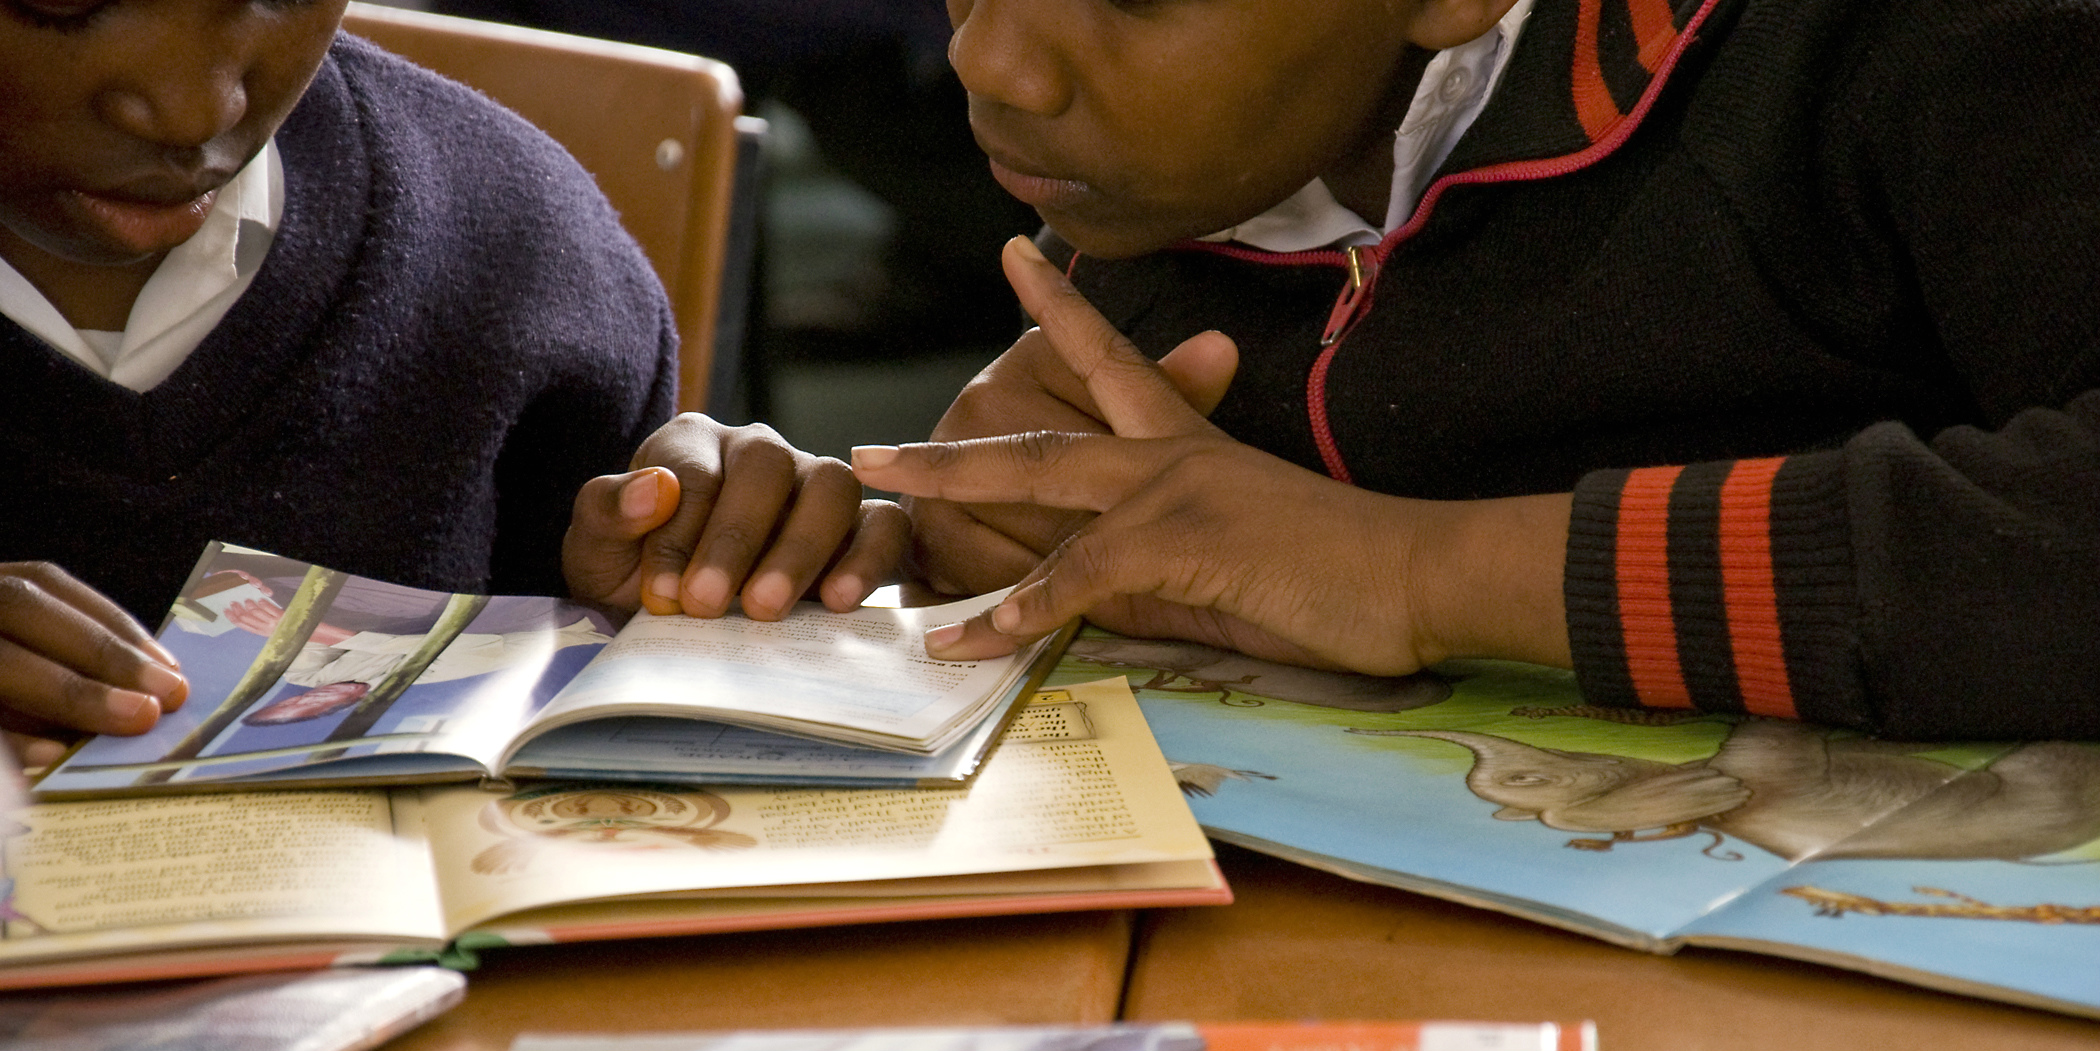 Learners focus on their reading. Volunteer opportunities in South Africa include initiatives to support learning.